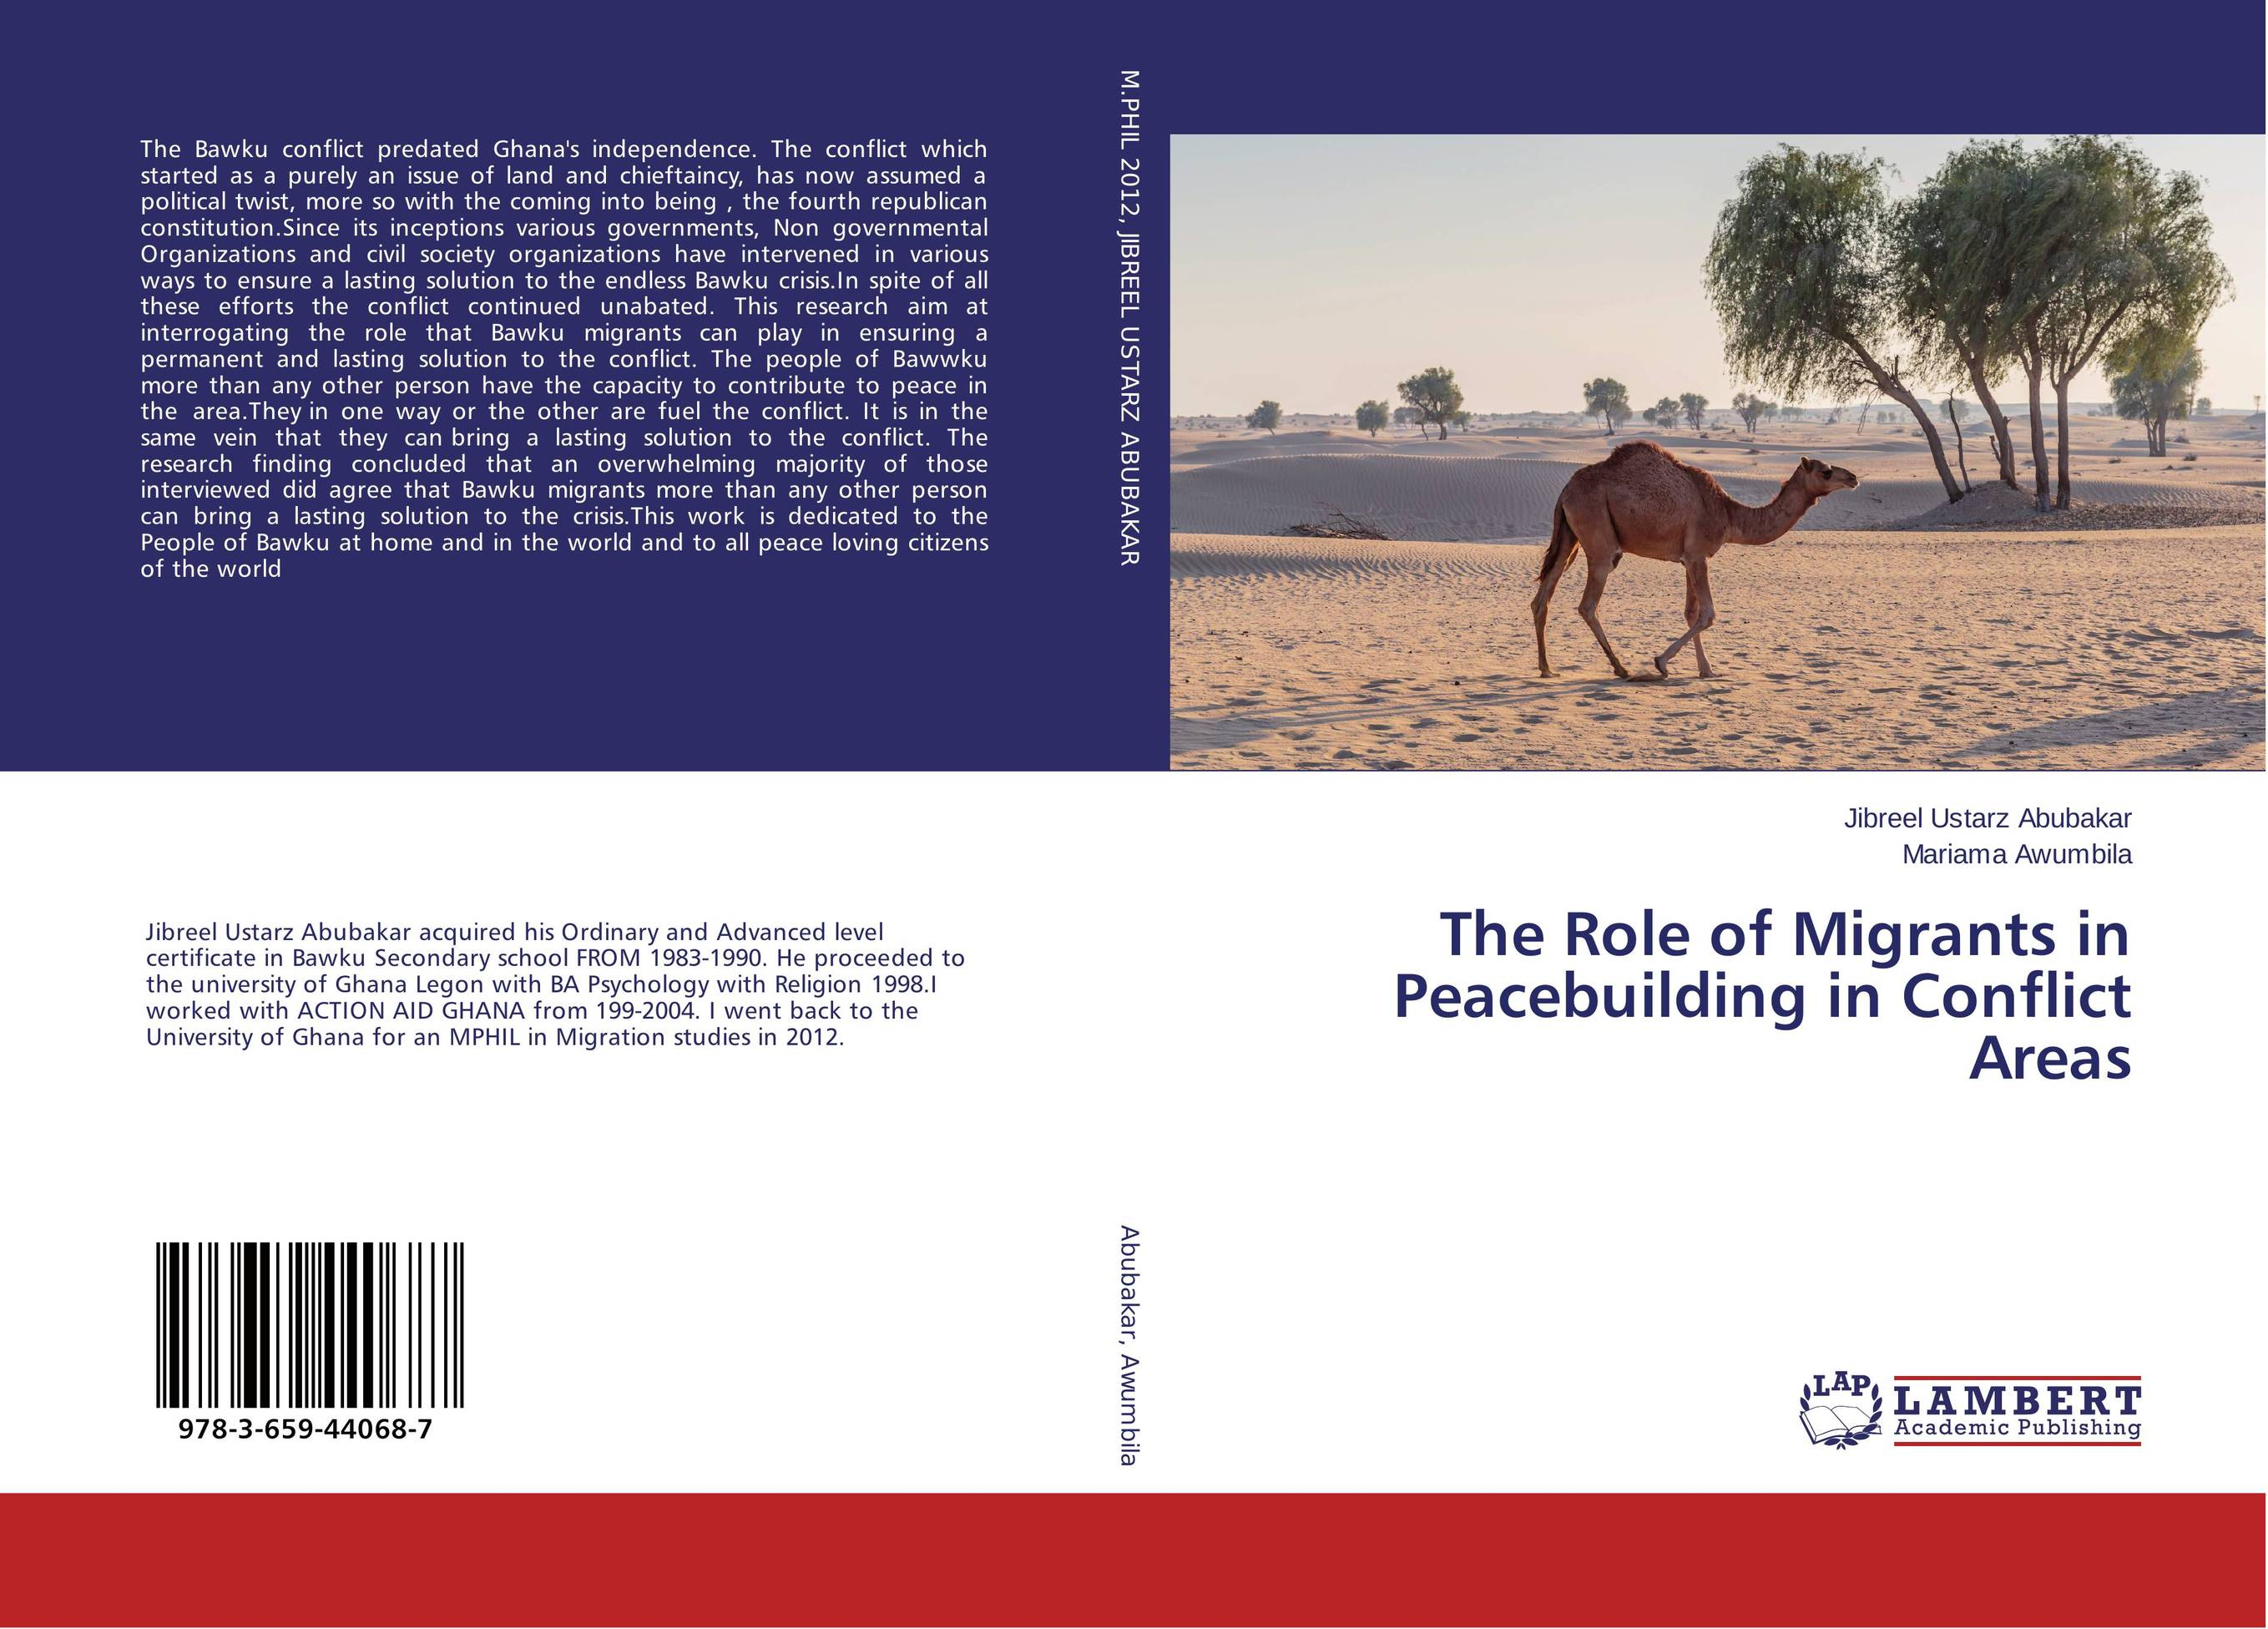 The Role of Migrants in Peacebuilding in Conflict Areas the role of the military in the political conflict in lesotho